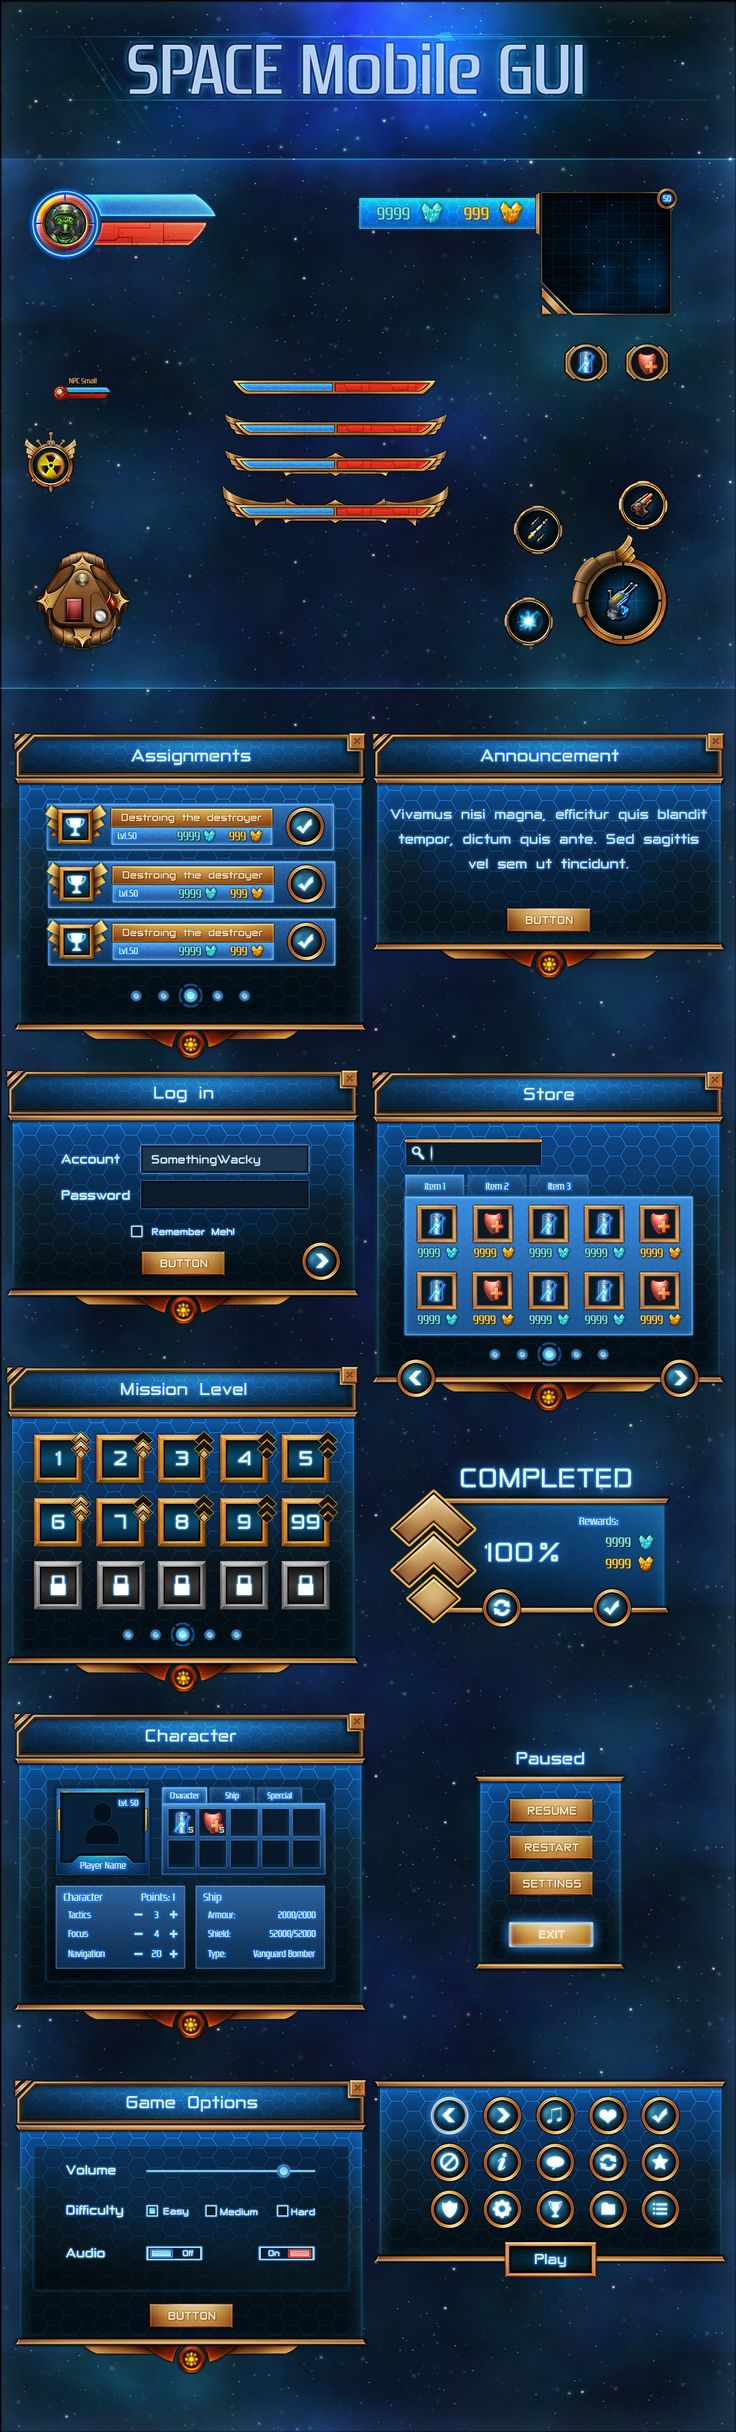 Space Mobile GUI by VengeanceMK1 on DeviantArt